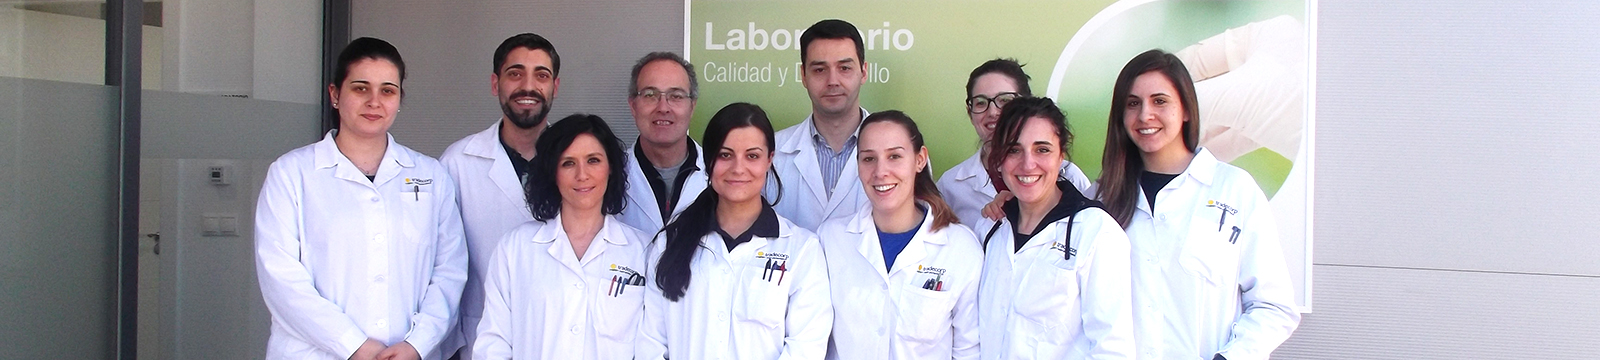 We spoke with Jorge Barbero on the remodeling and expansion of the laboratory